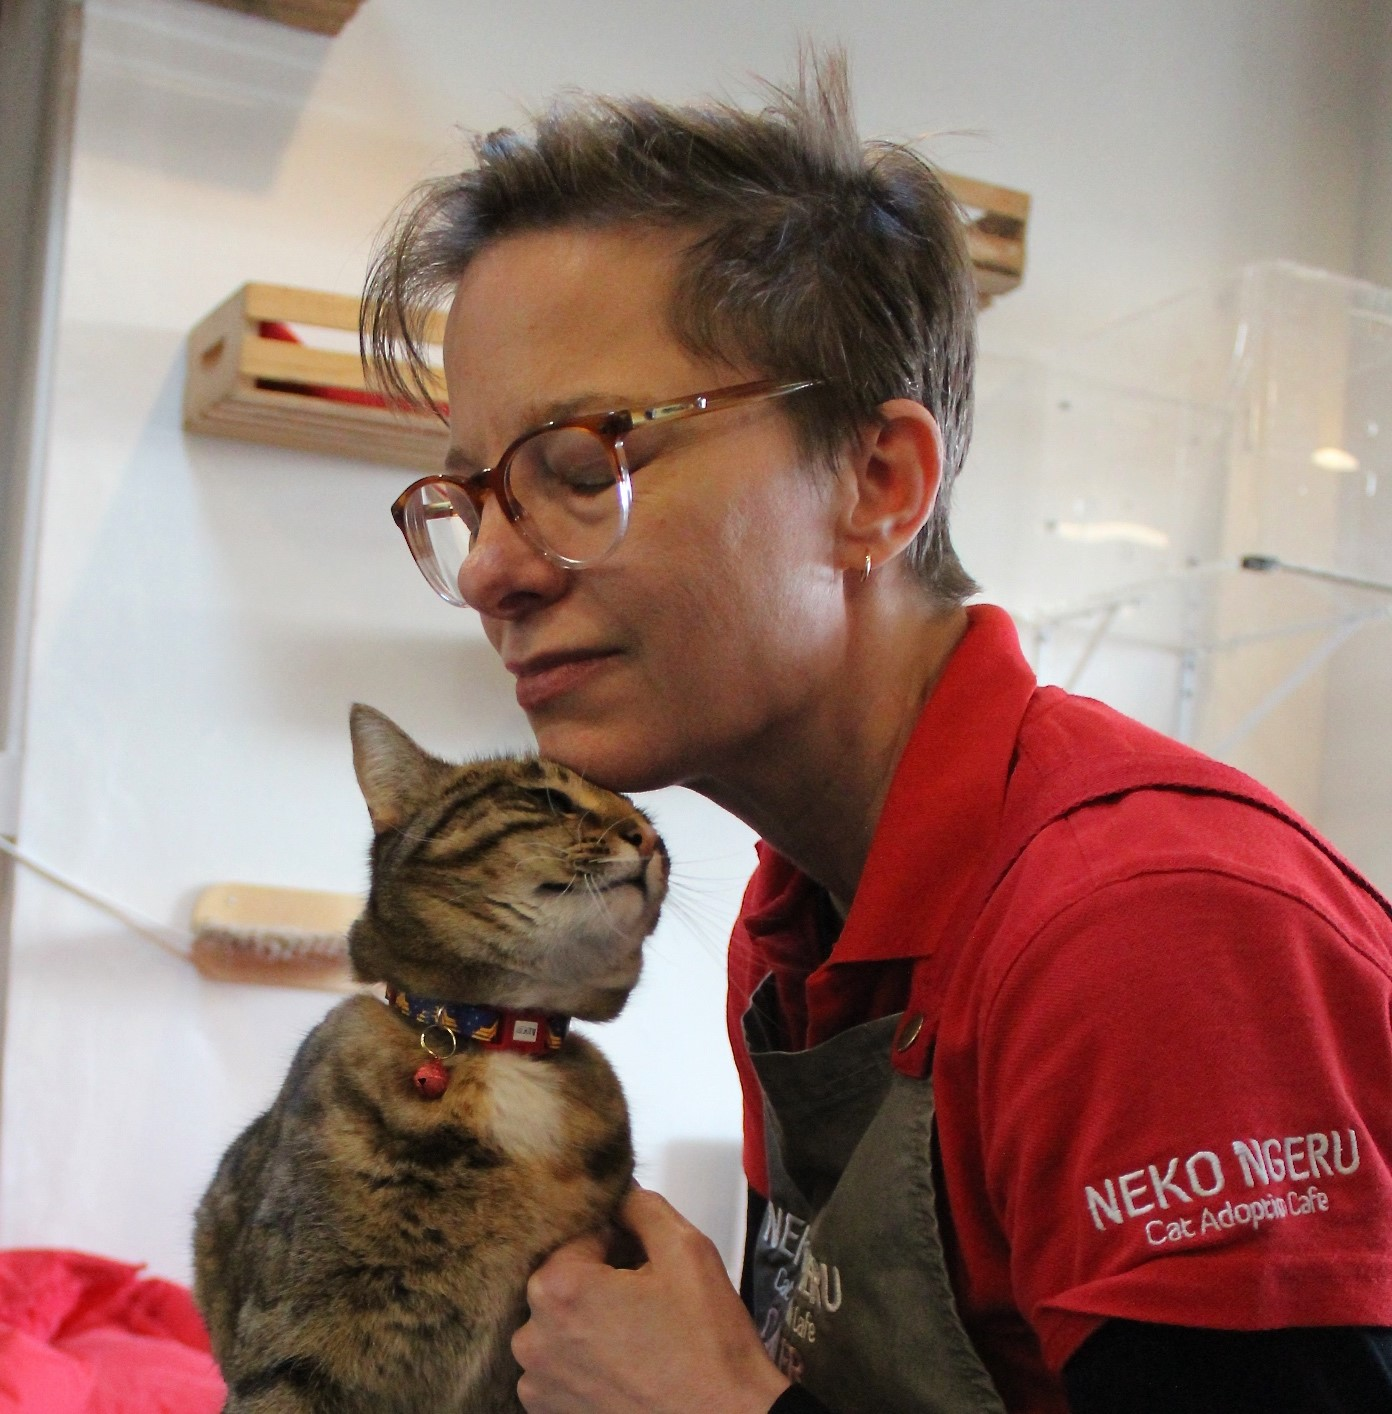 Richelle with cat